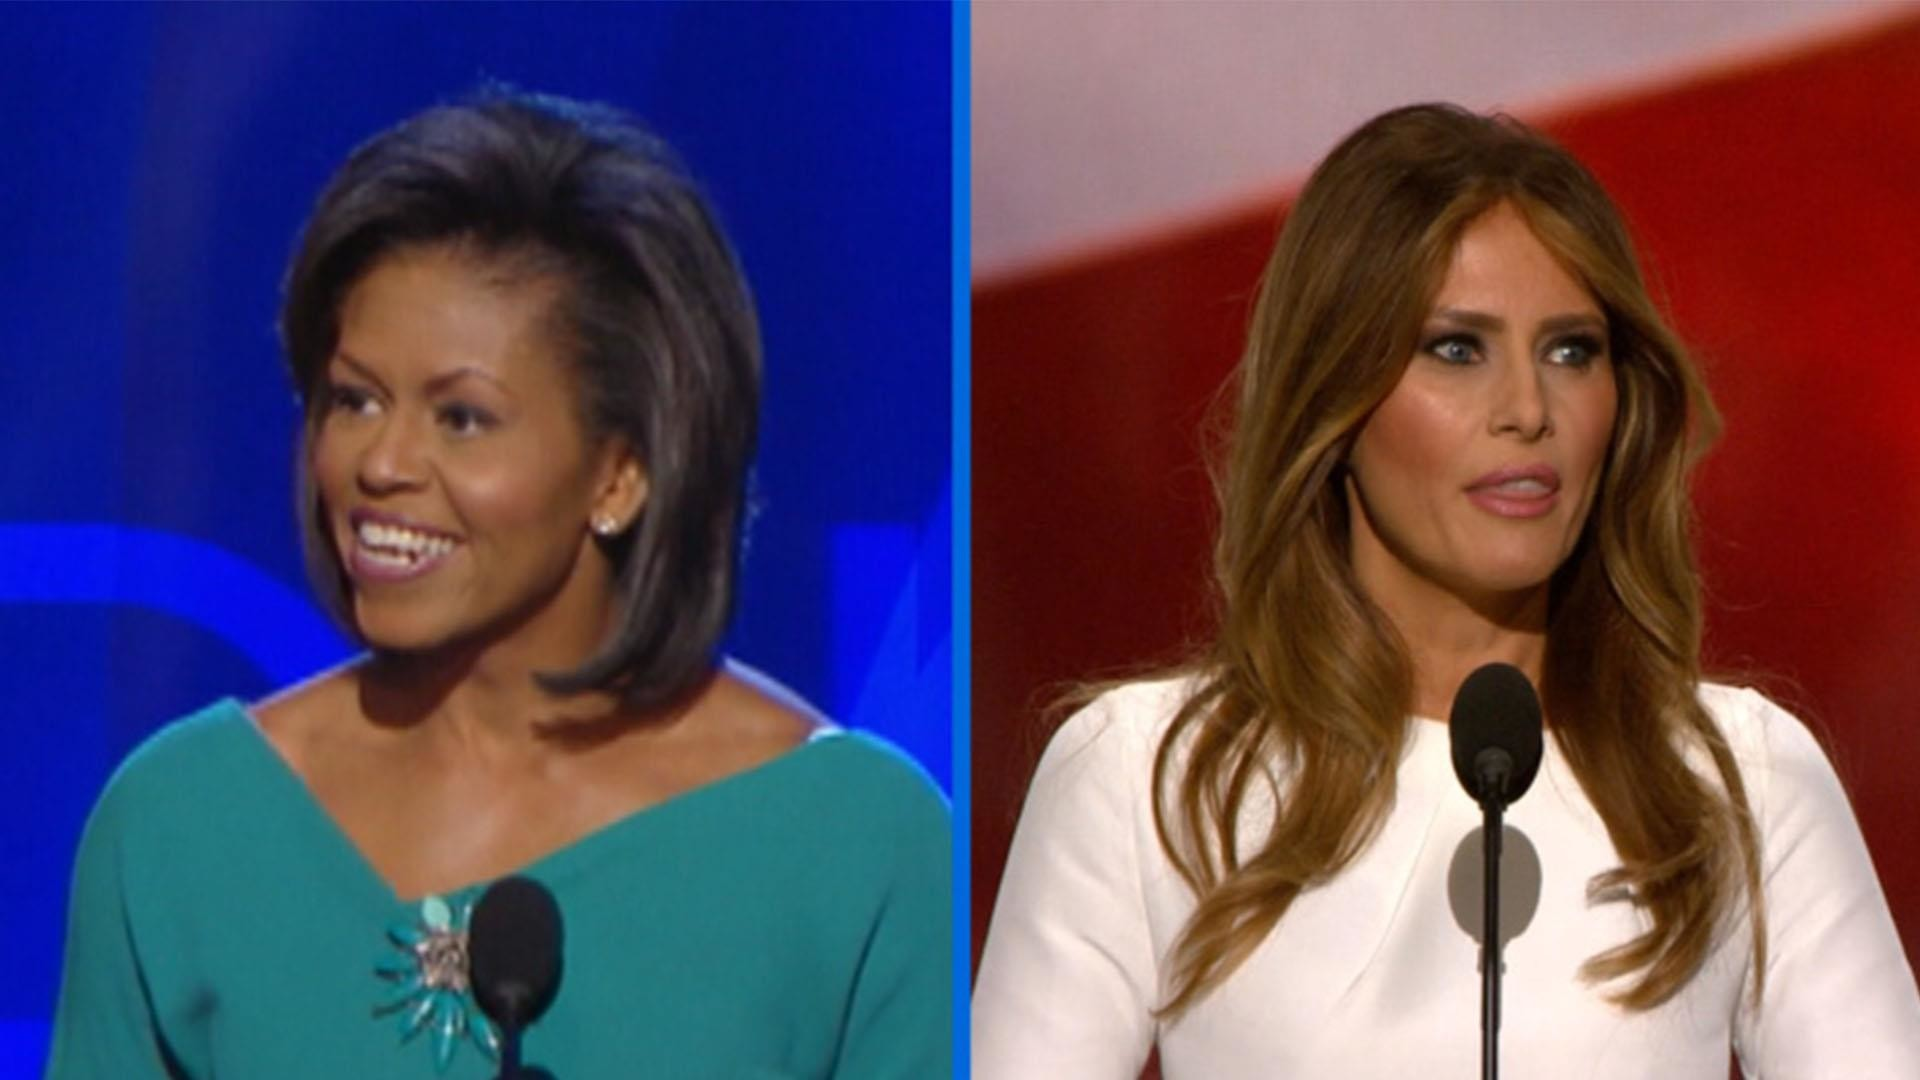 Michelle Obama and Melania Trump lines: similarities side by side – NBC News